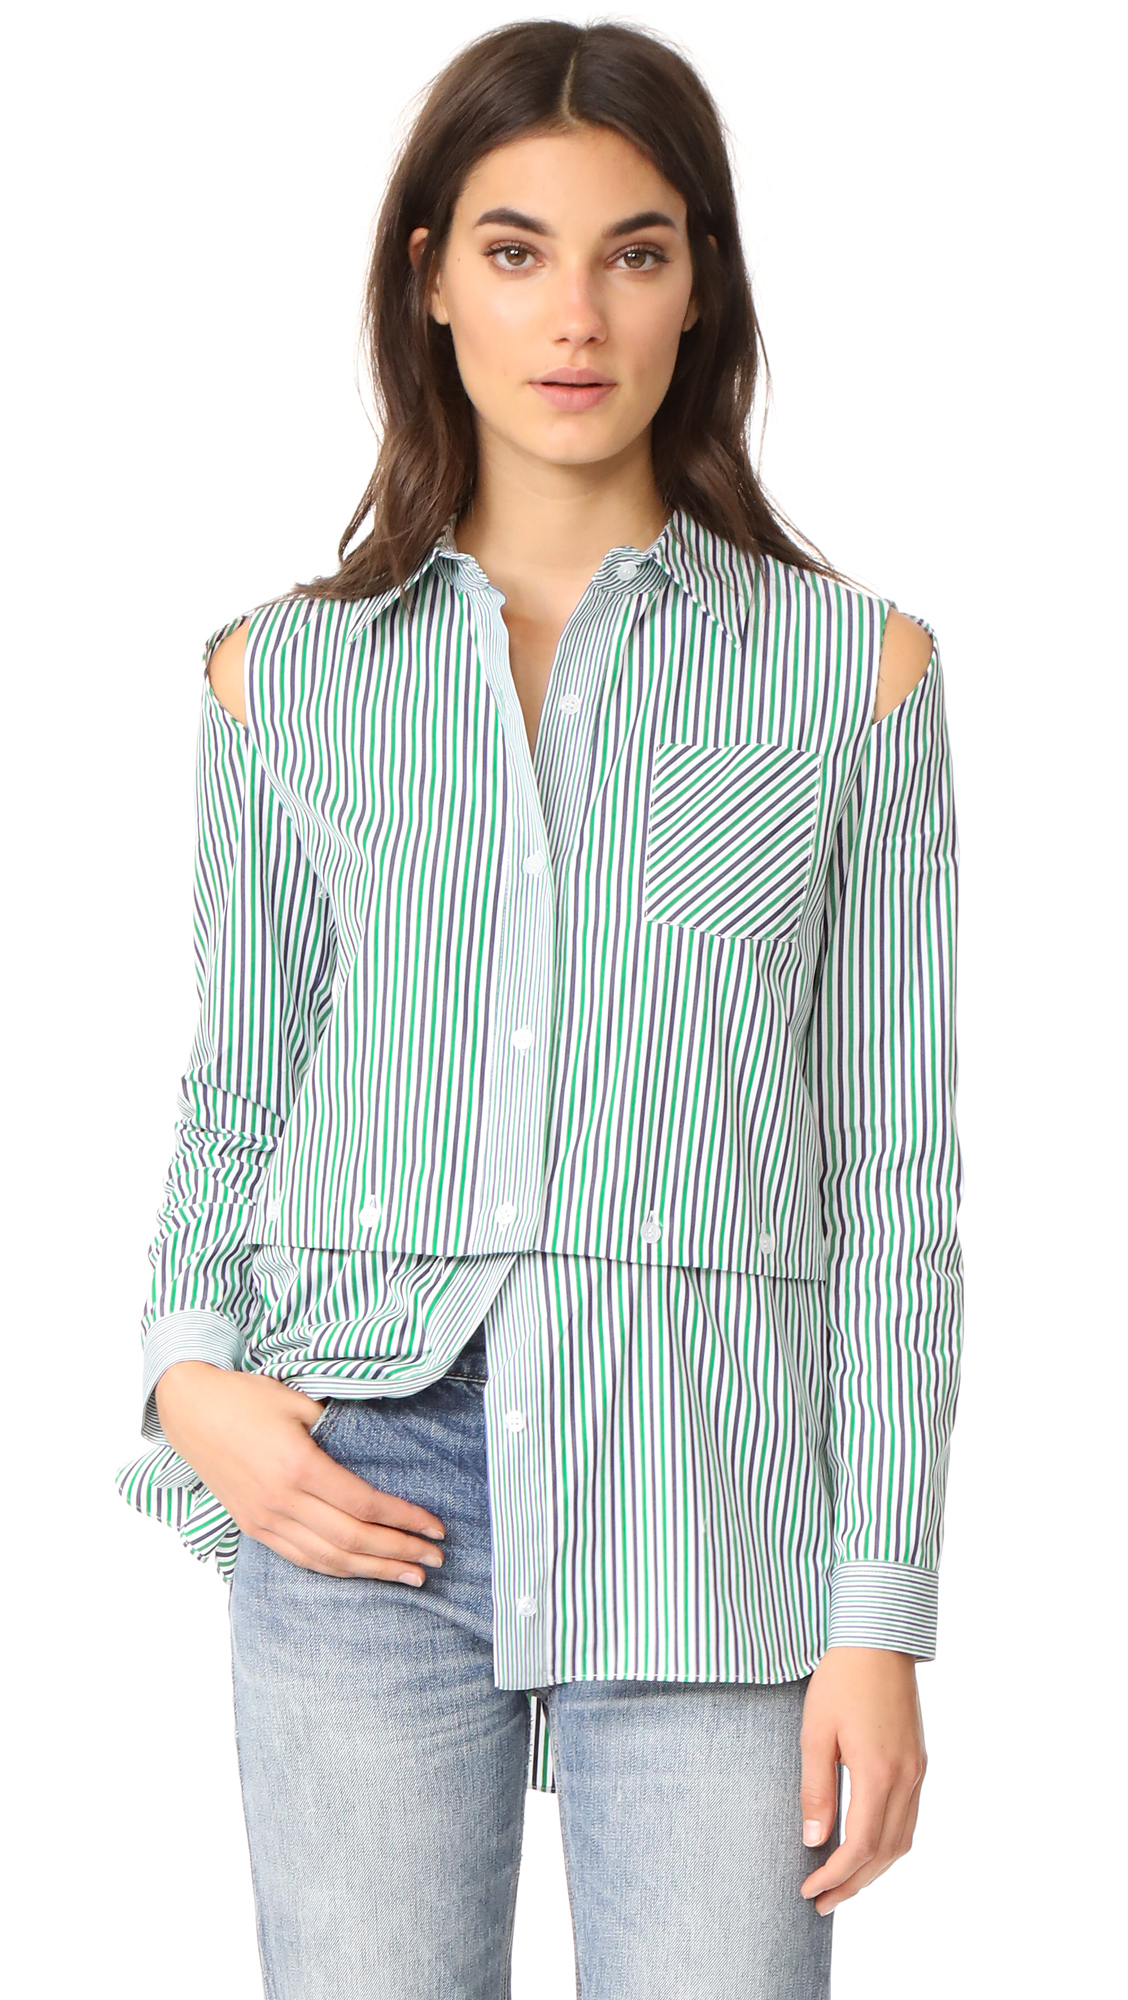 Milly Stripe Fractured Shirting - Emerald